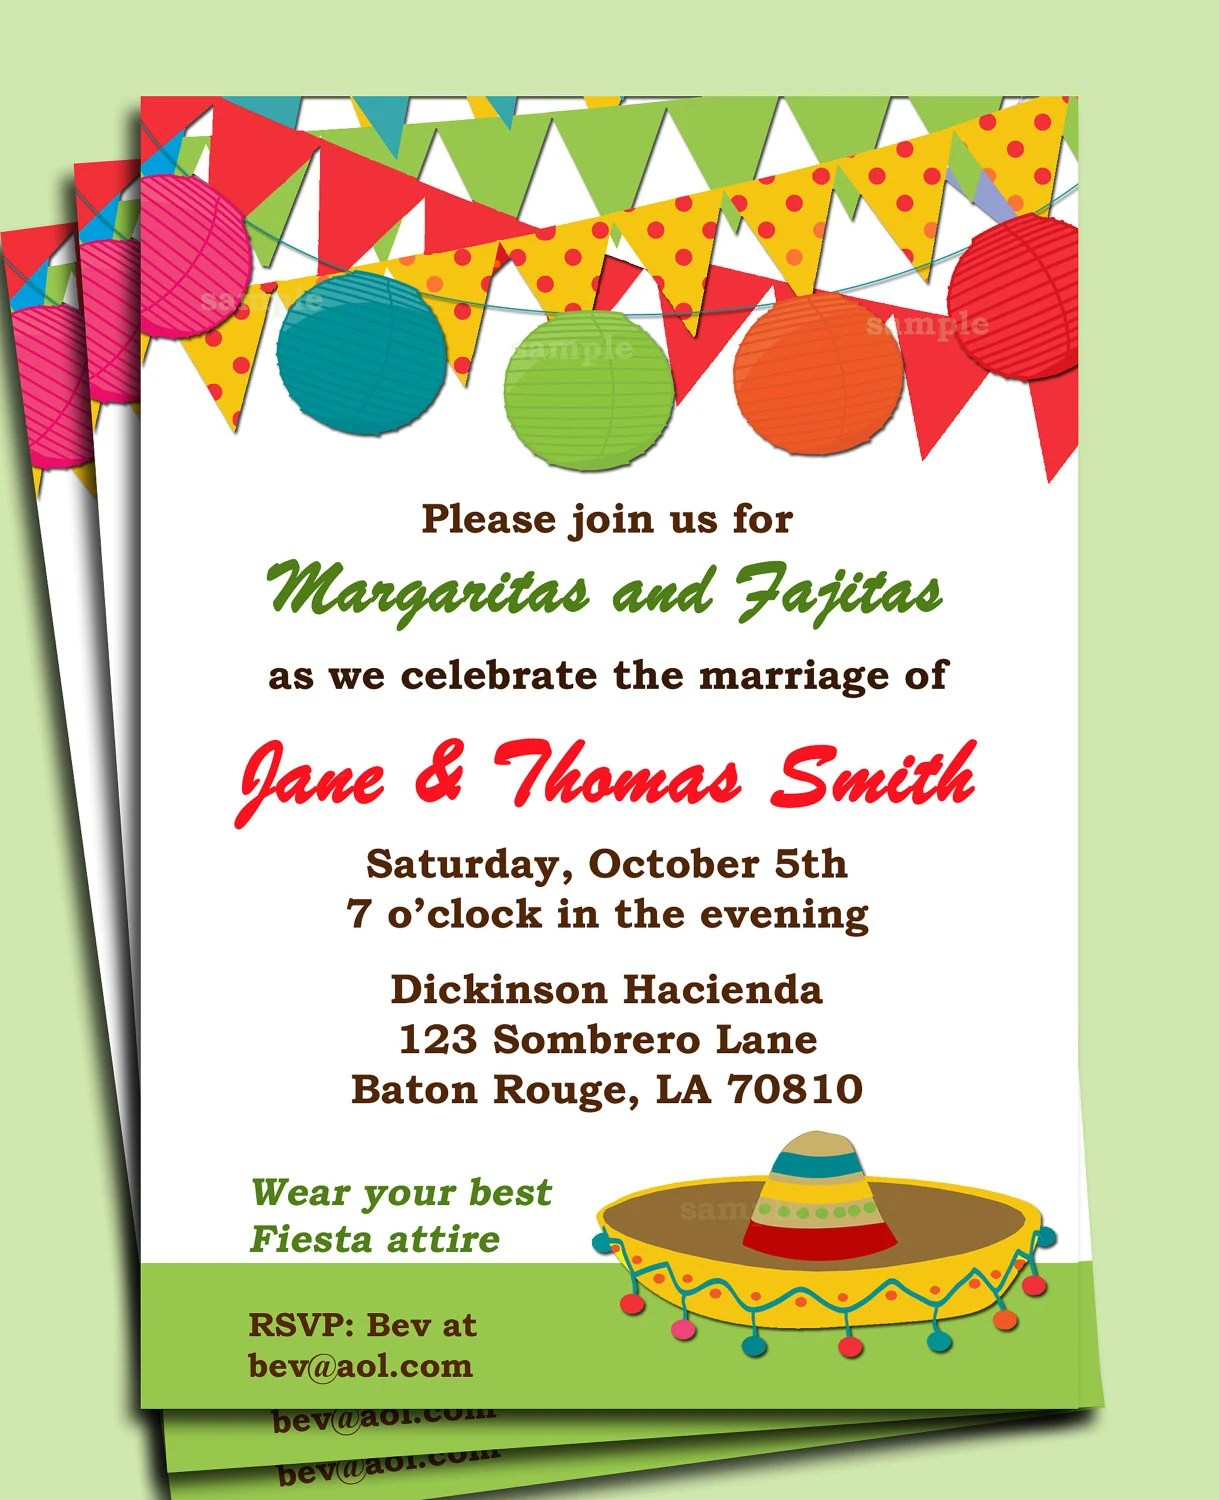 fiesta invitations templates free - Alannoscrapleftbehind - celebration invitations templates